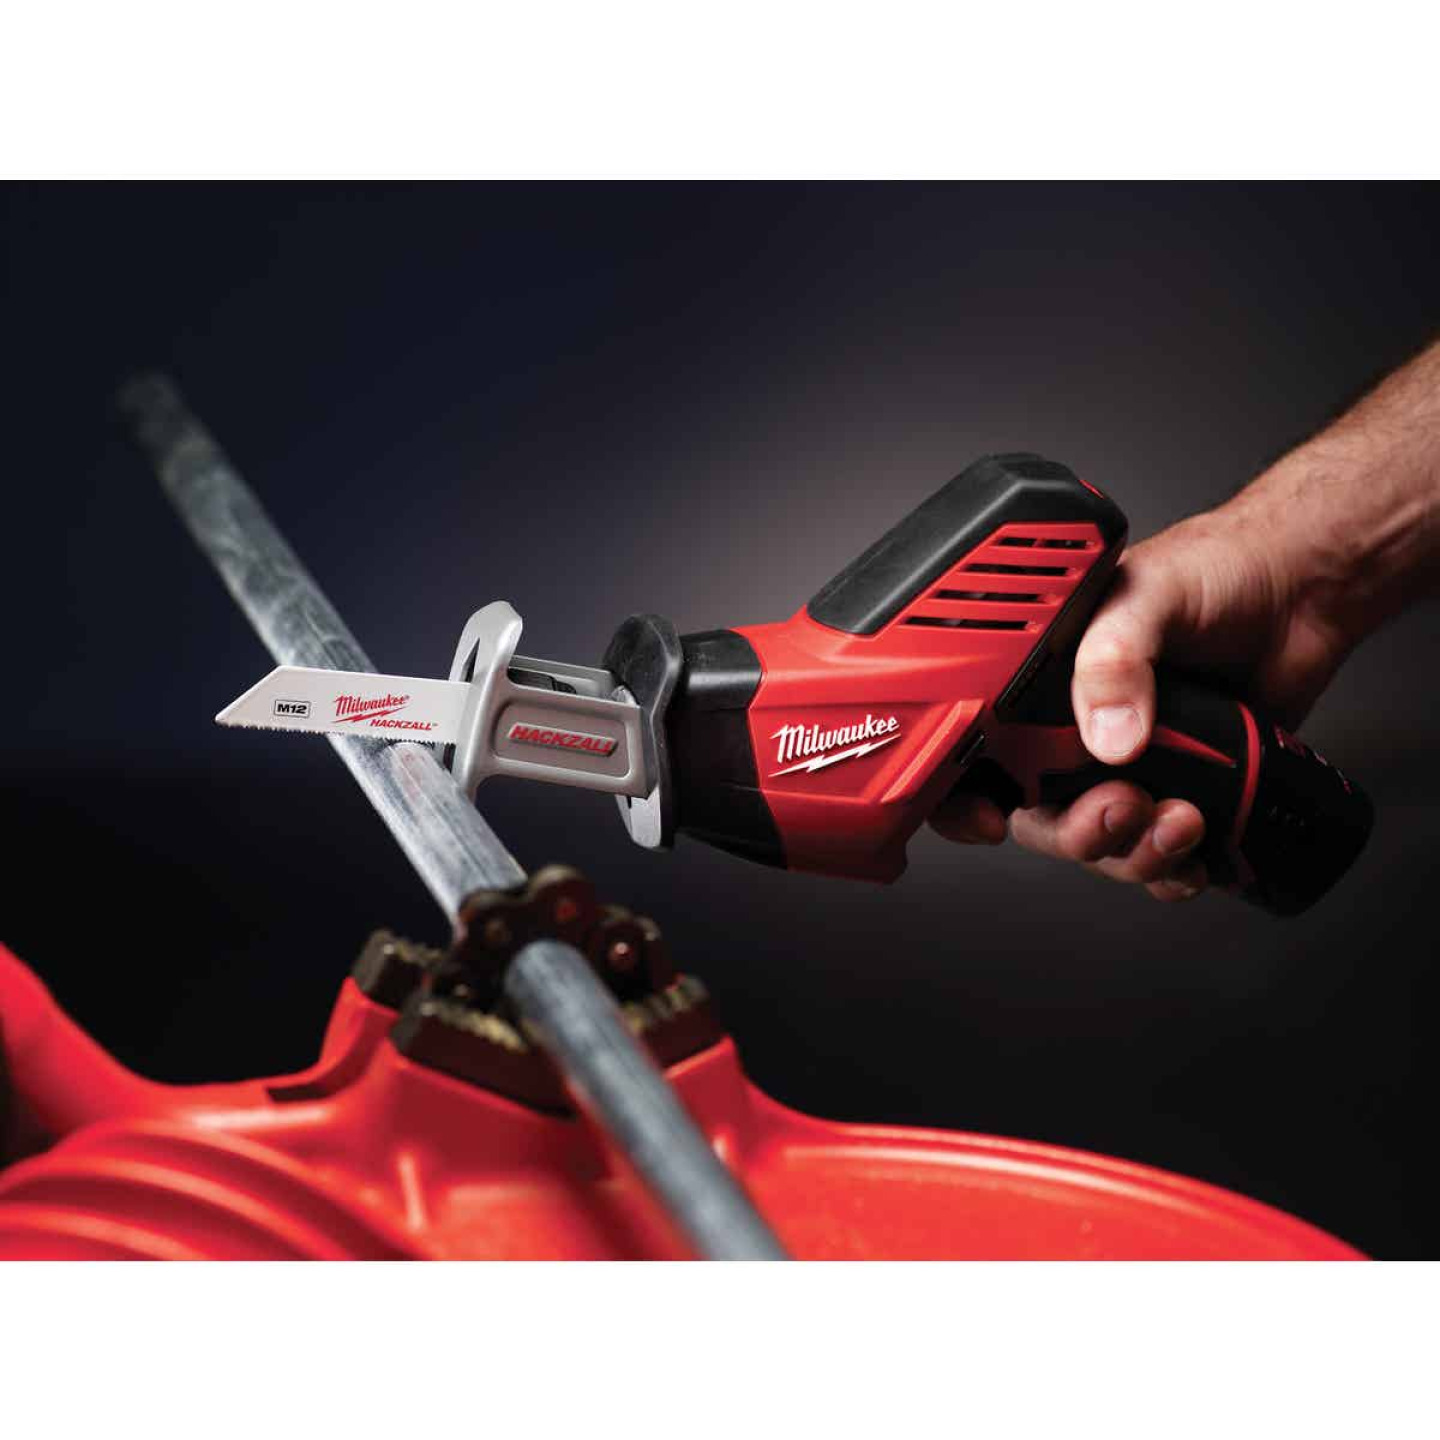 Milwaukee Hackzall M12 12 Volt Lithium-Ion Cordless Reciprocating Saw Kit Image 4